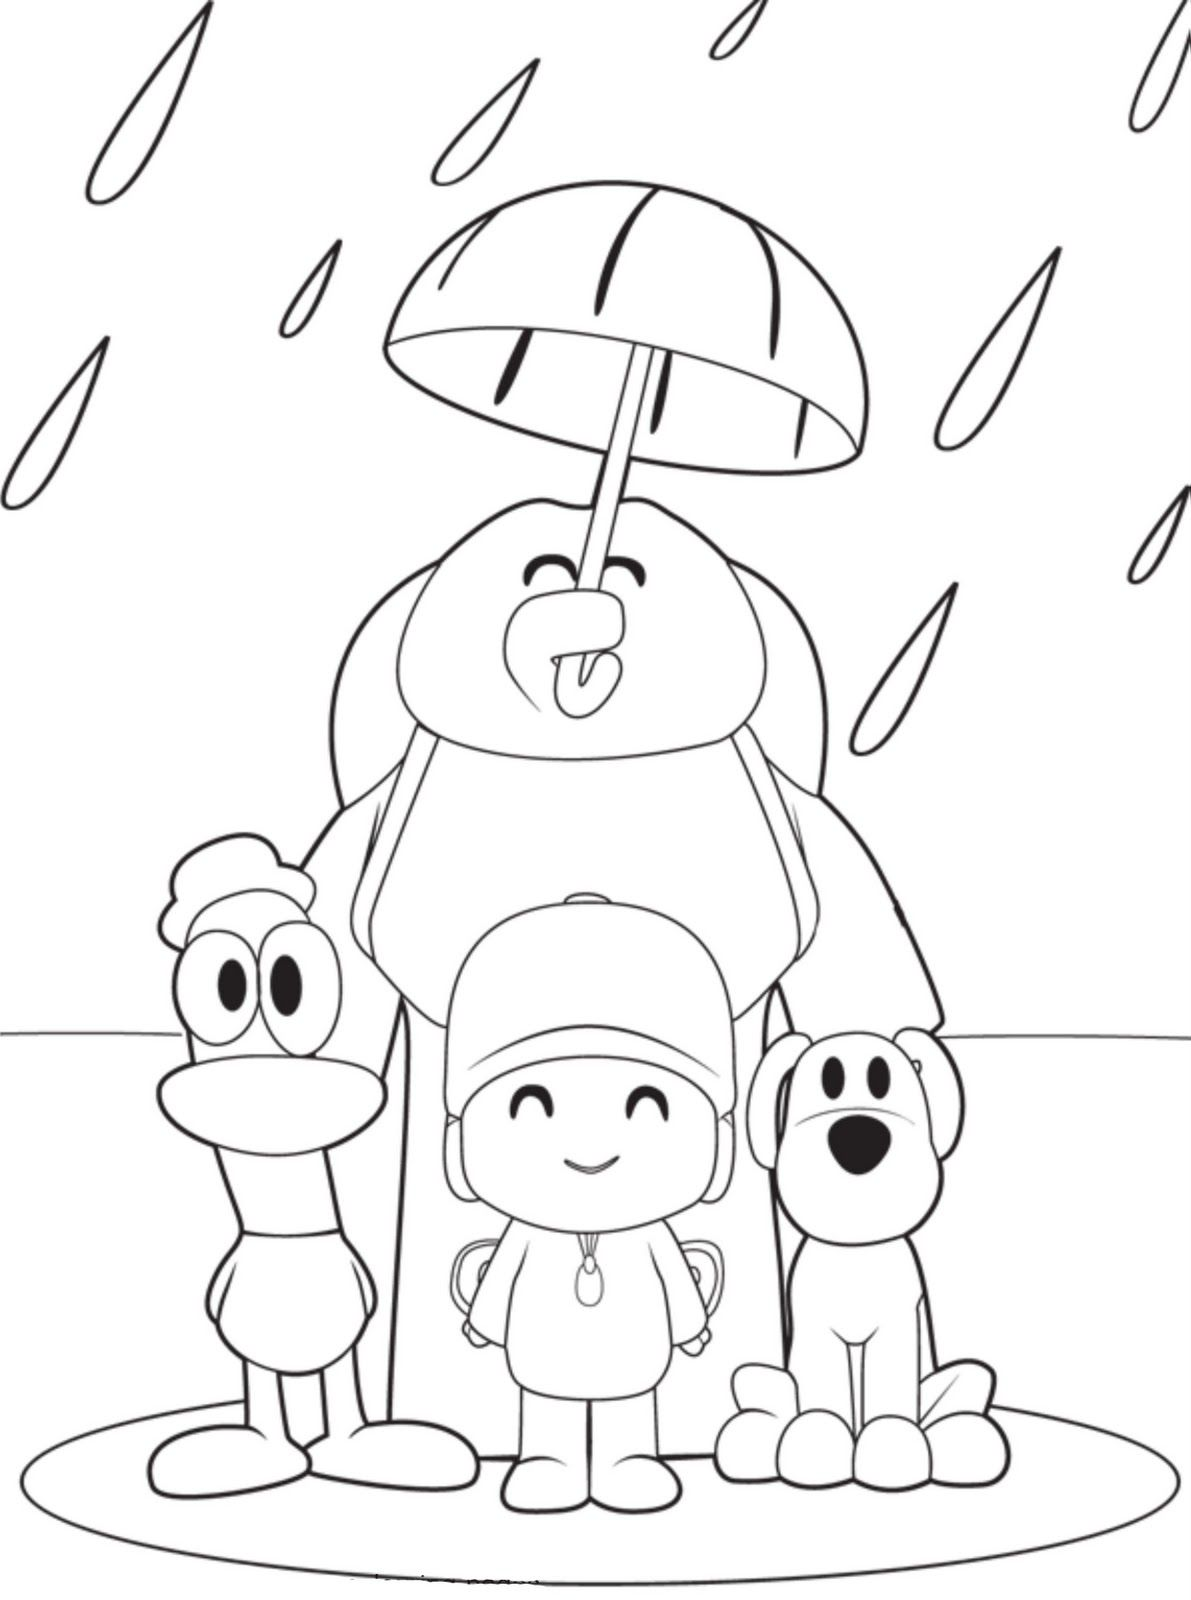 Free Printable Pocoyo Coloring Pages For Kids Umbrella Coloring